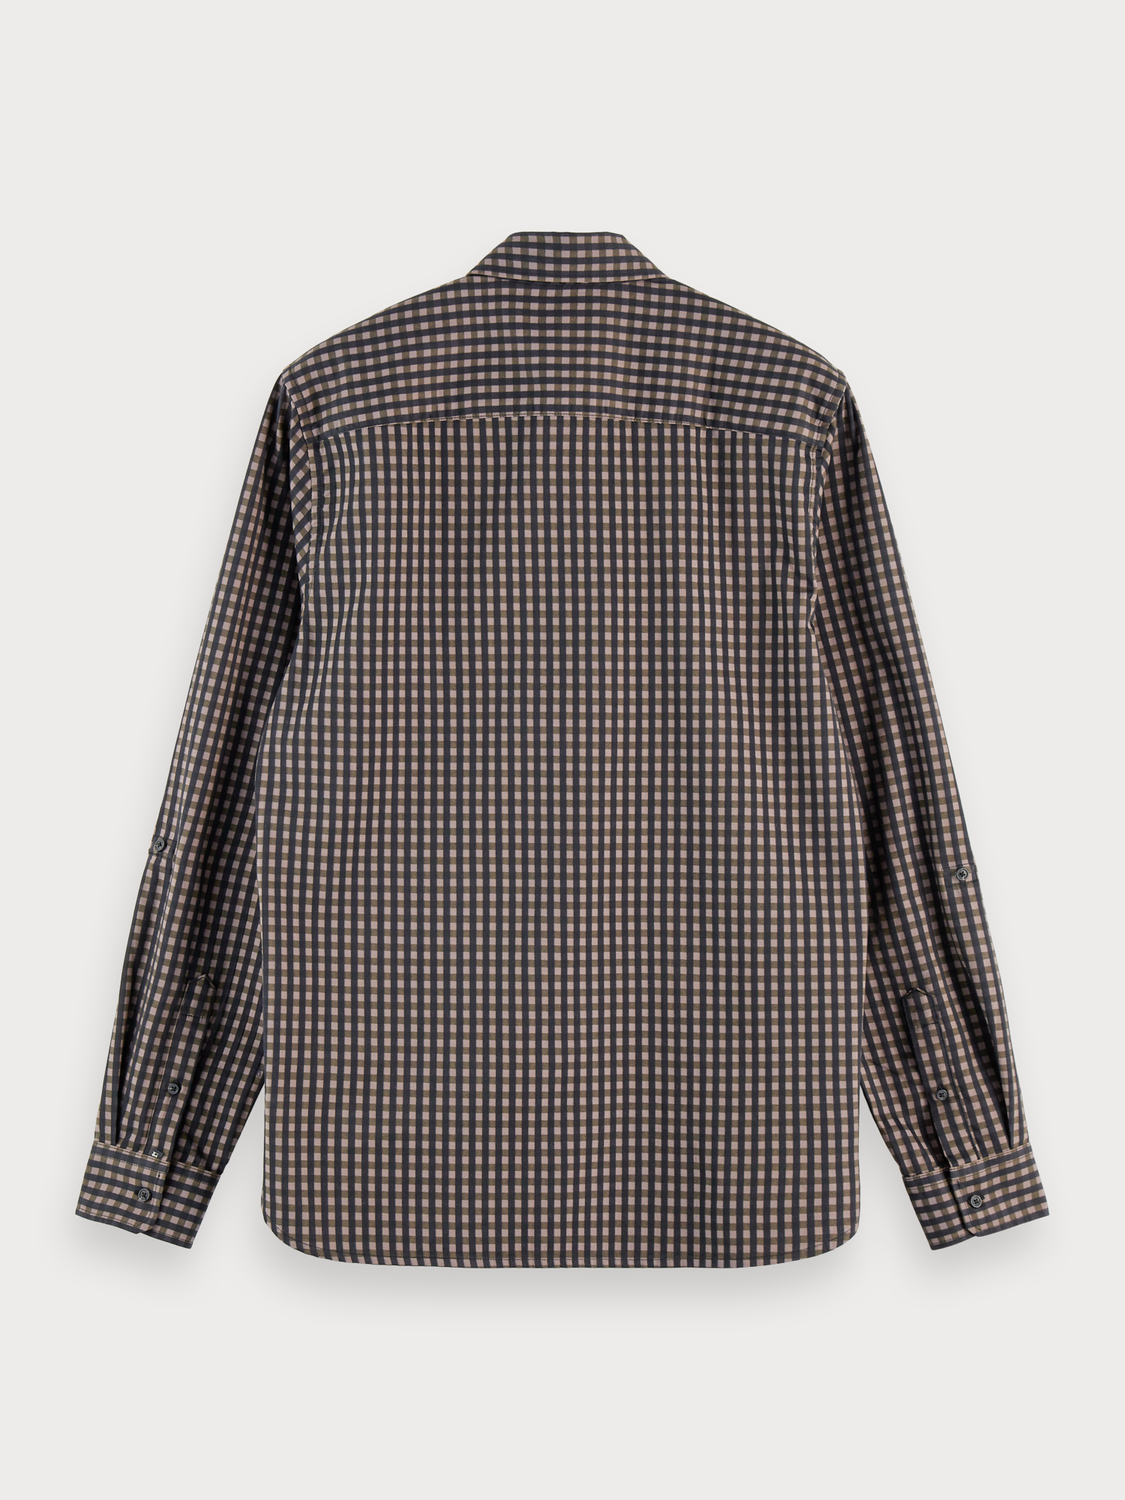 Herrar 100% cotton BB-check shirt